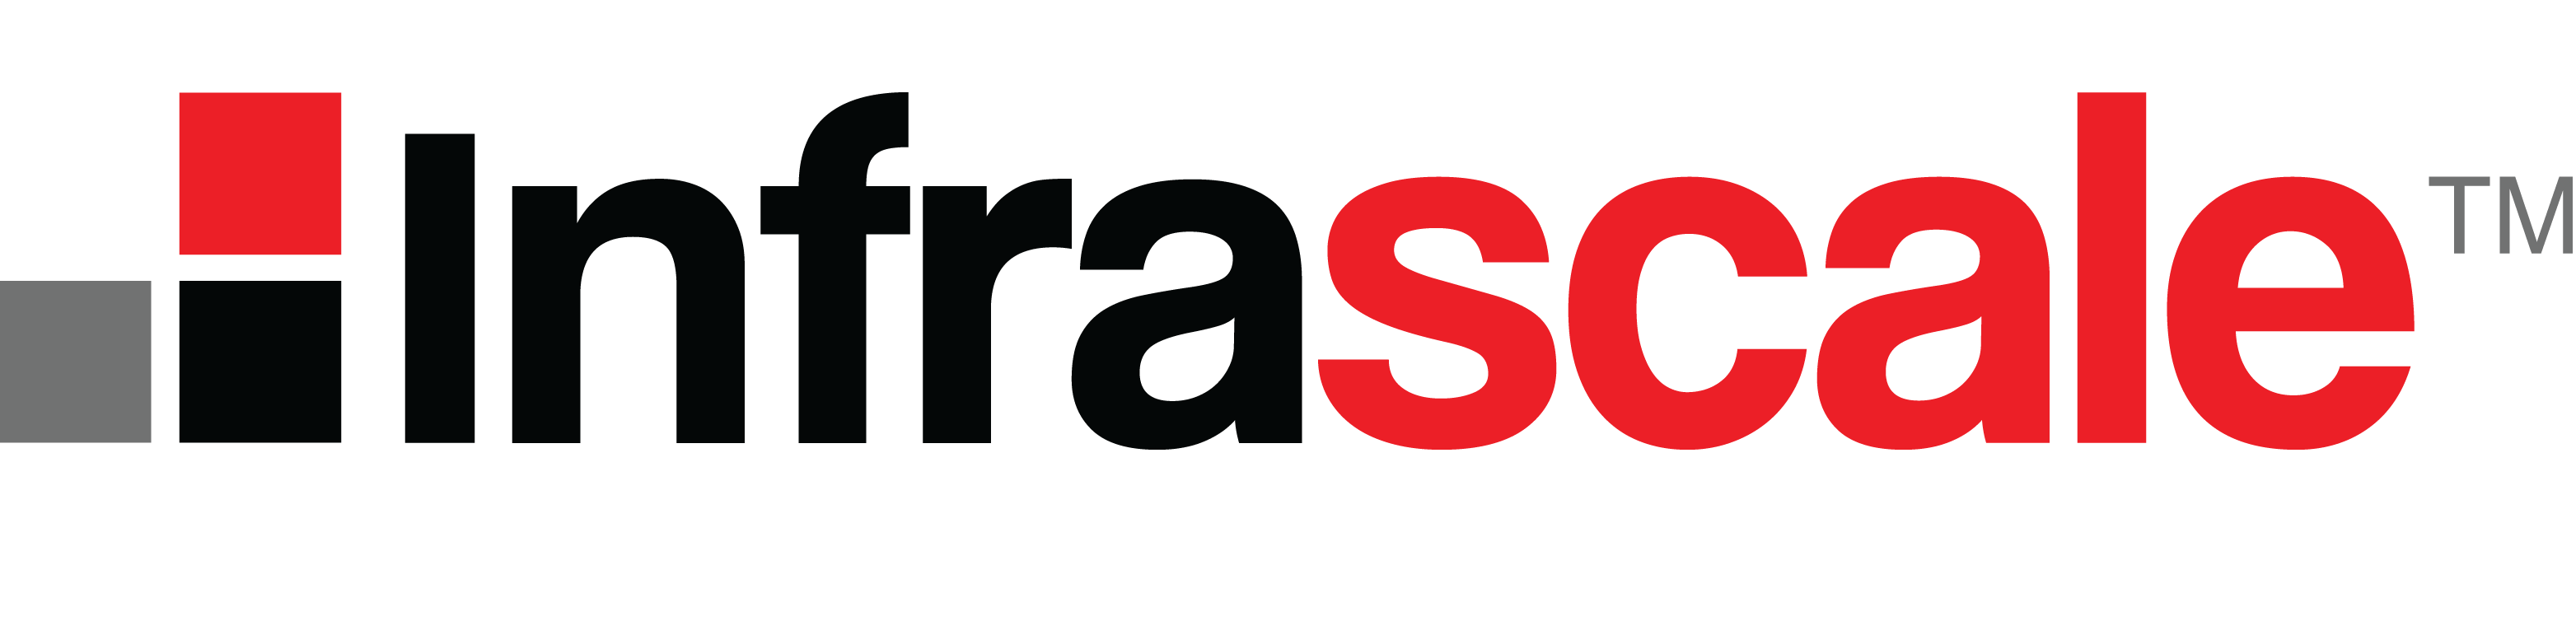 infrascale-official-logo.png